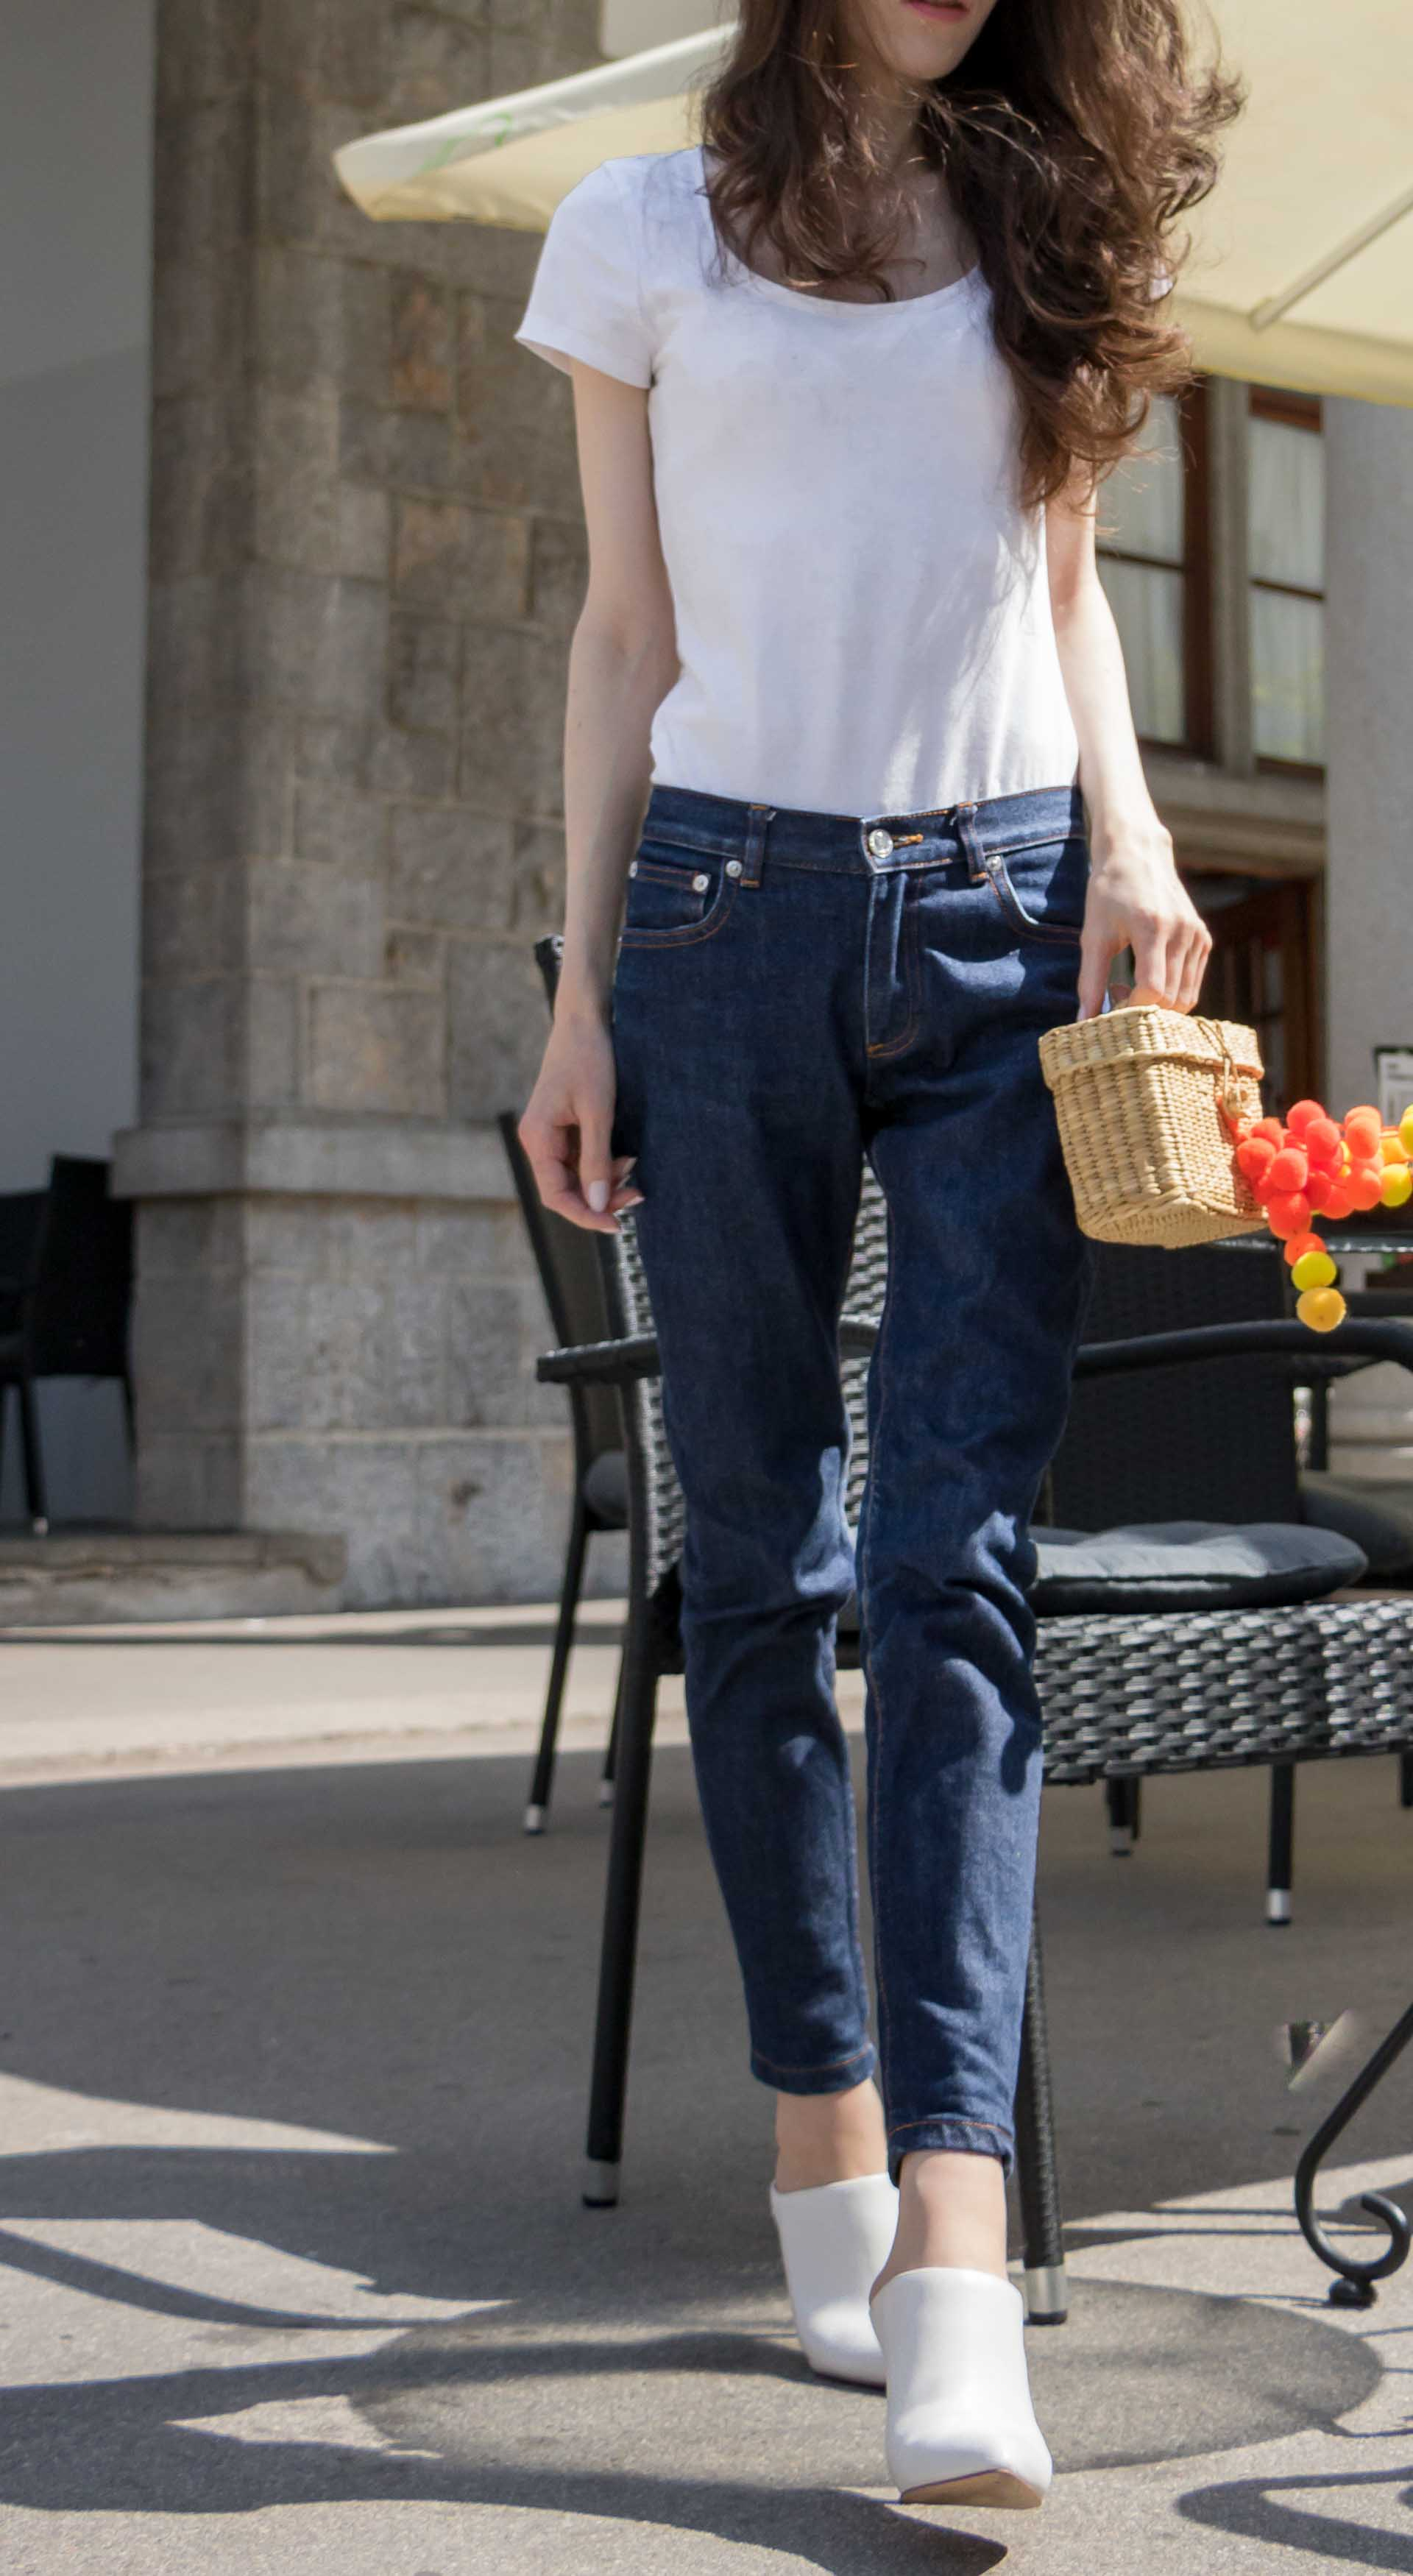 Veronika Lipar Fashion Editor of Brunette from Wall Street dressed in basic summer outfit dark blue tapered jeans from A.P.C., H&M white T-shirt, Nannacay basket bag, white mules and Adam Selman x Le Specs white cat eye Lolita sunglasses for drinks